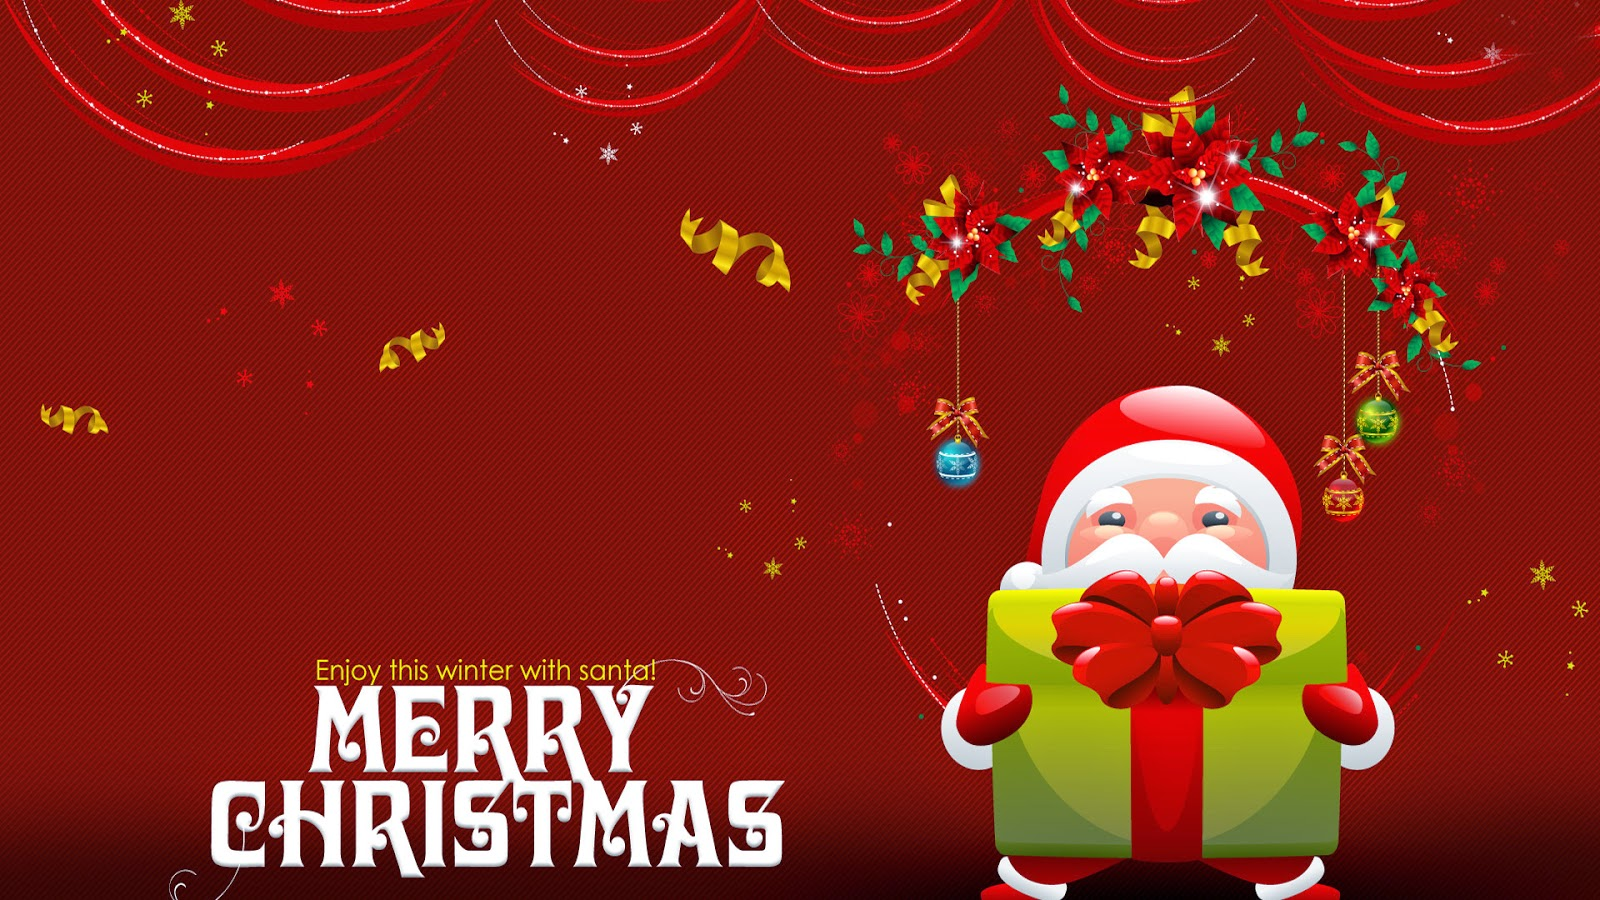 Enjoy-this-winter-with-santa-greetings-wishes-text-hd-wallpaper.jpg